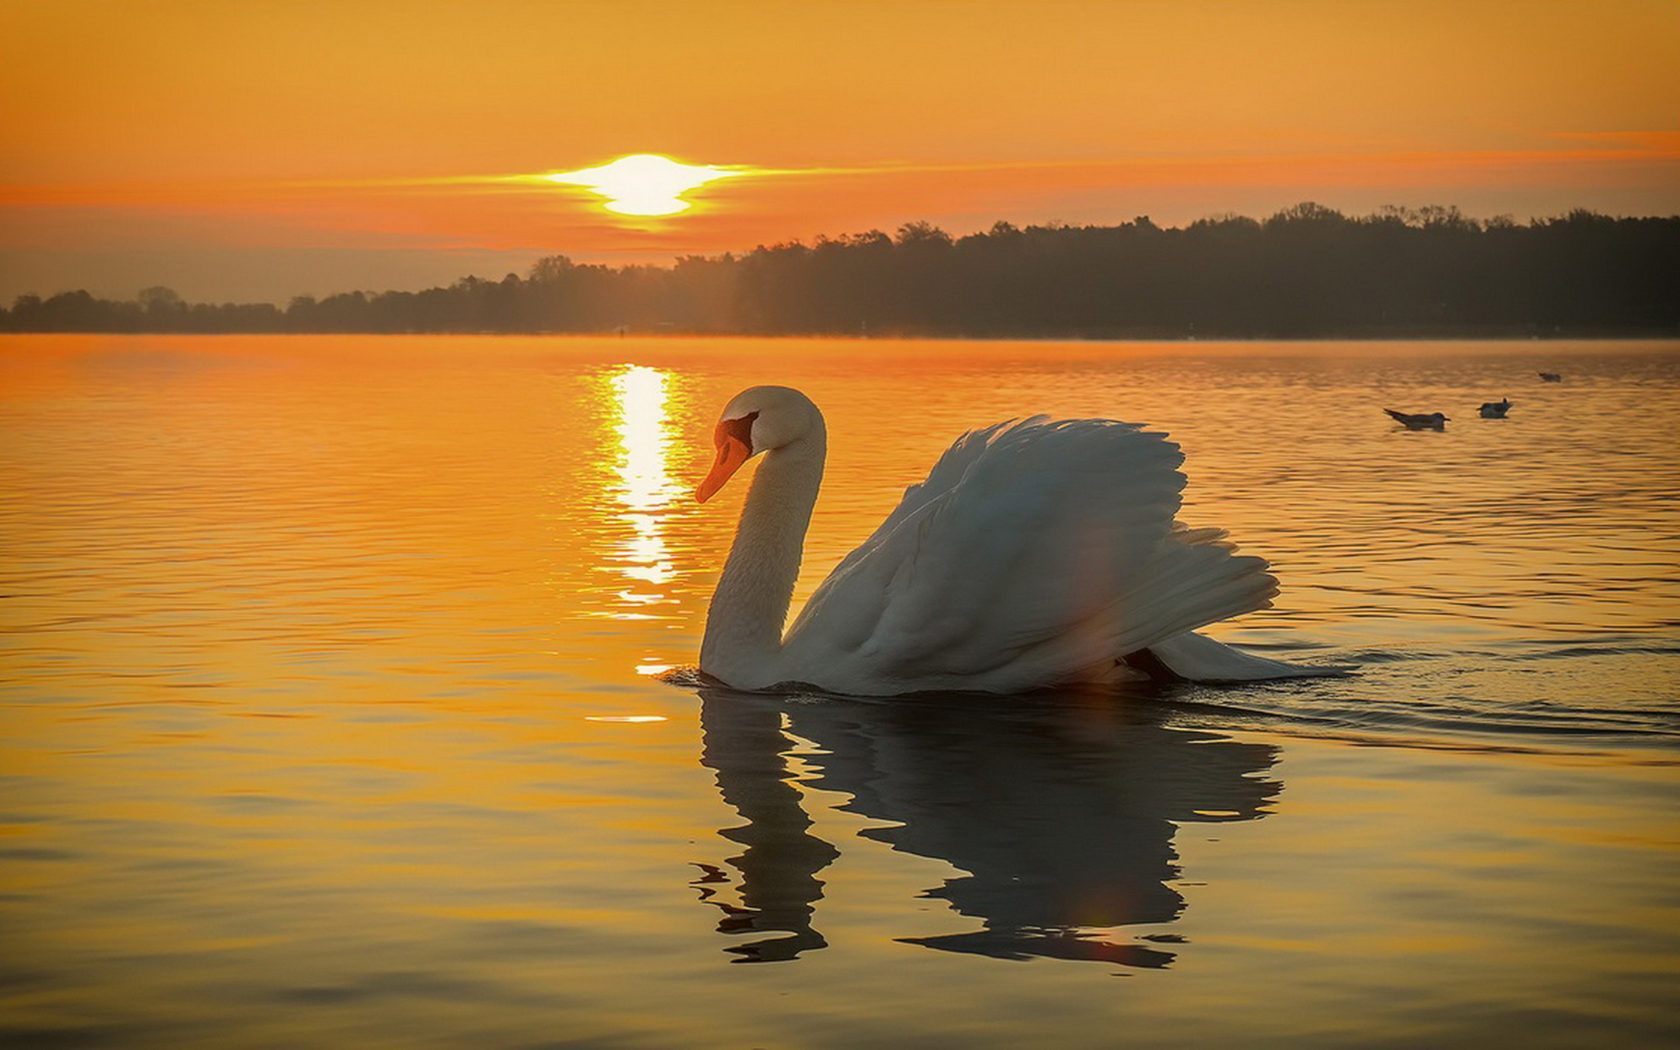 Iphone X Wallpaper Gif Landscape Swan Bird Lake Beautiful Sunset Wallpaper Hd